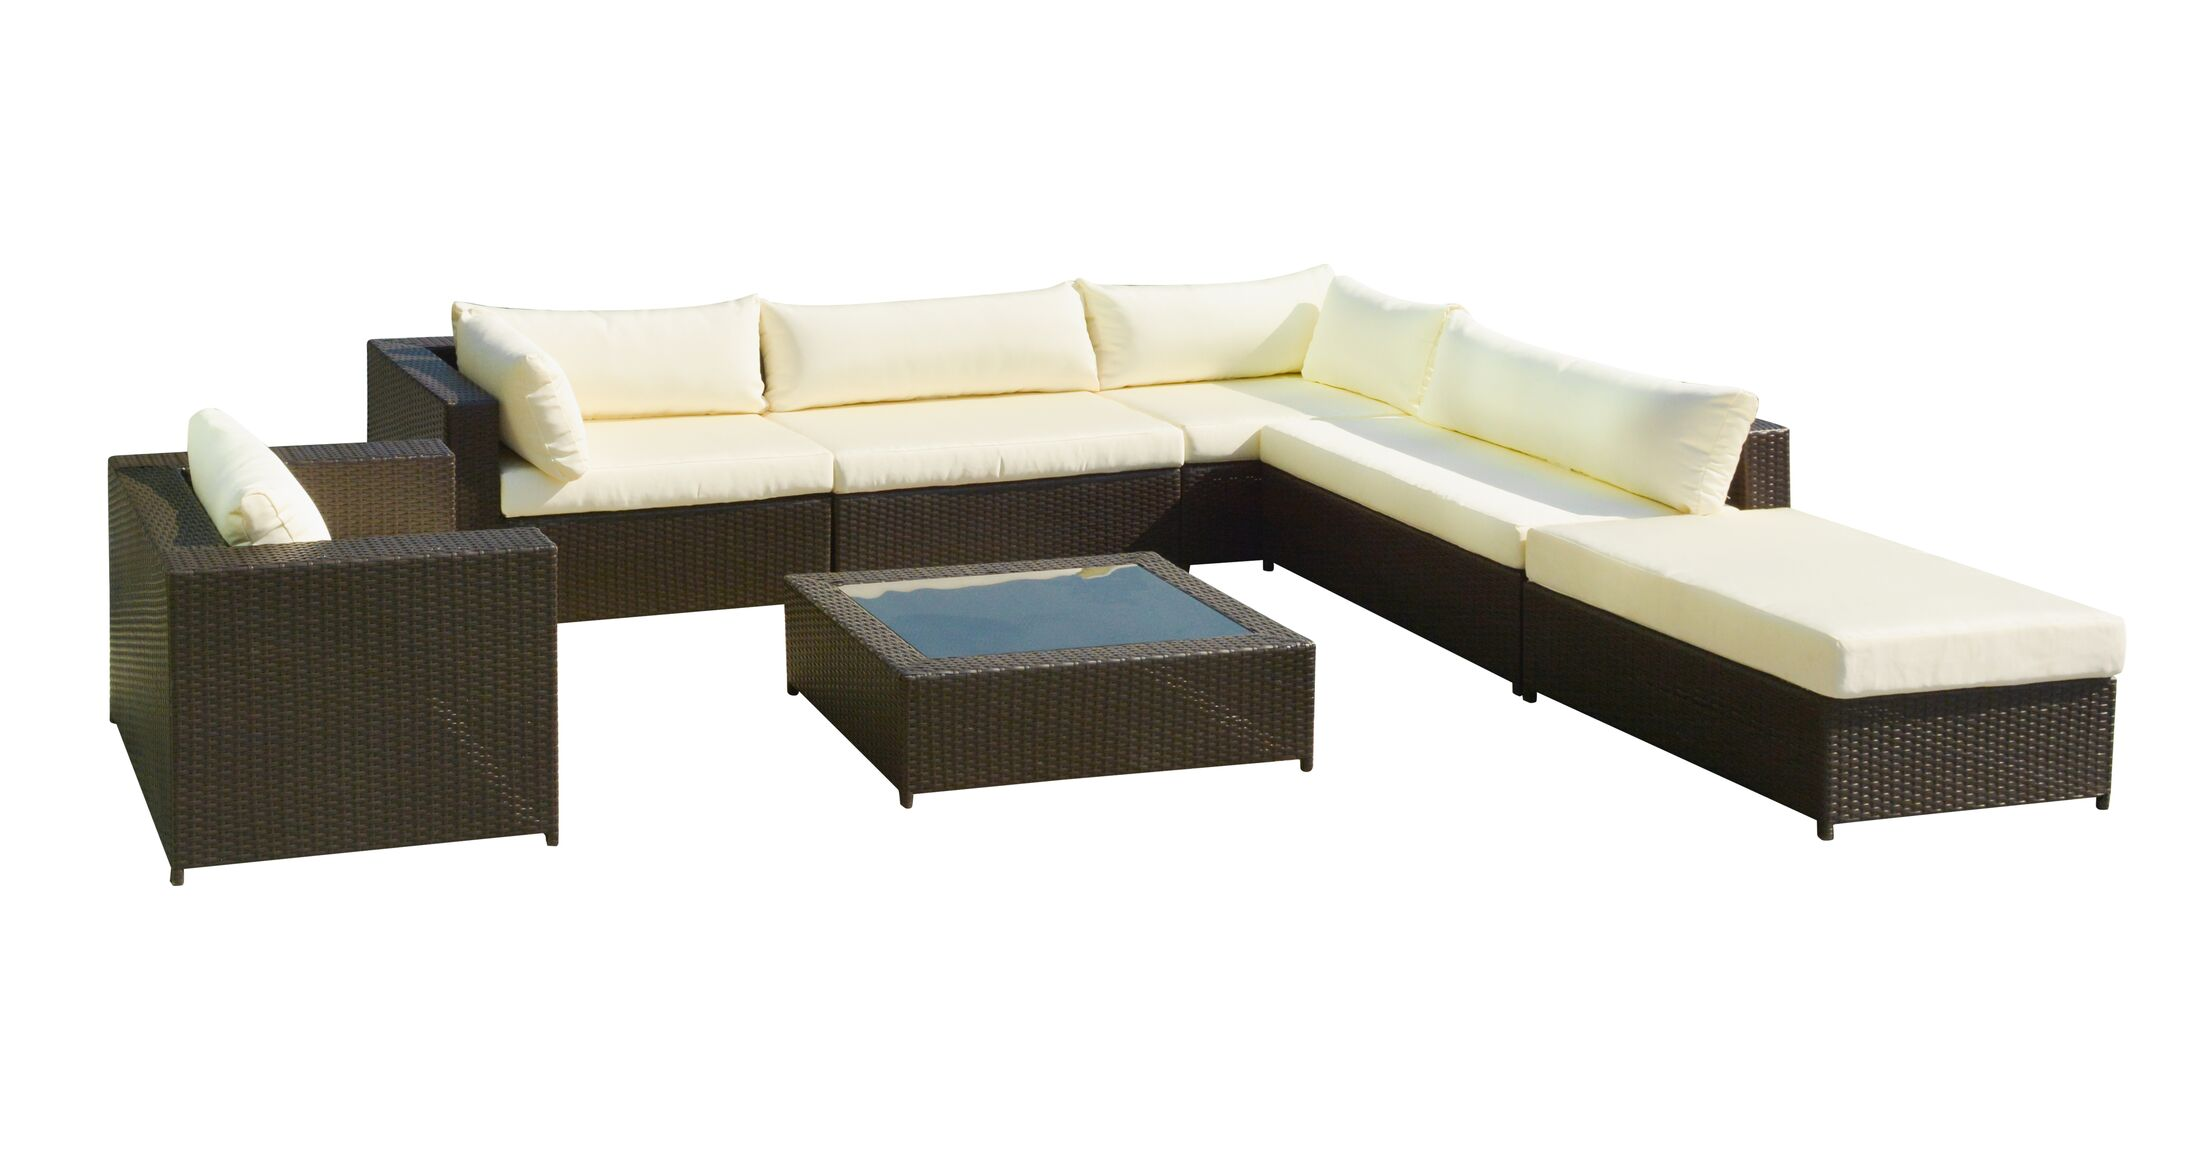 Gracey Rattan Sectional Sofa Set with Cushions